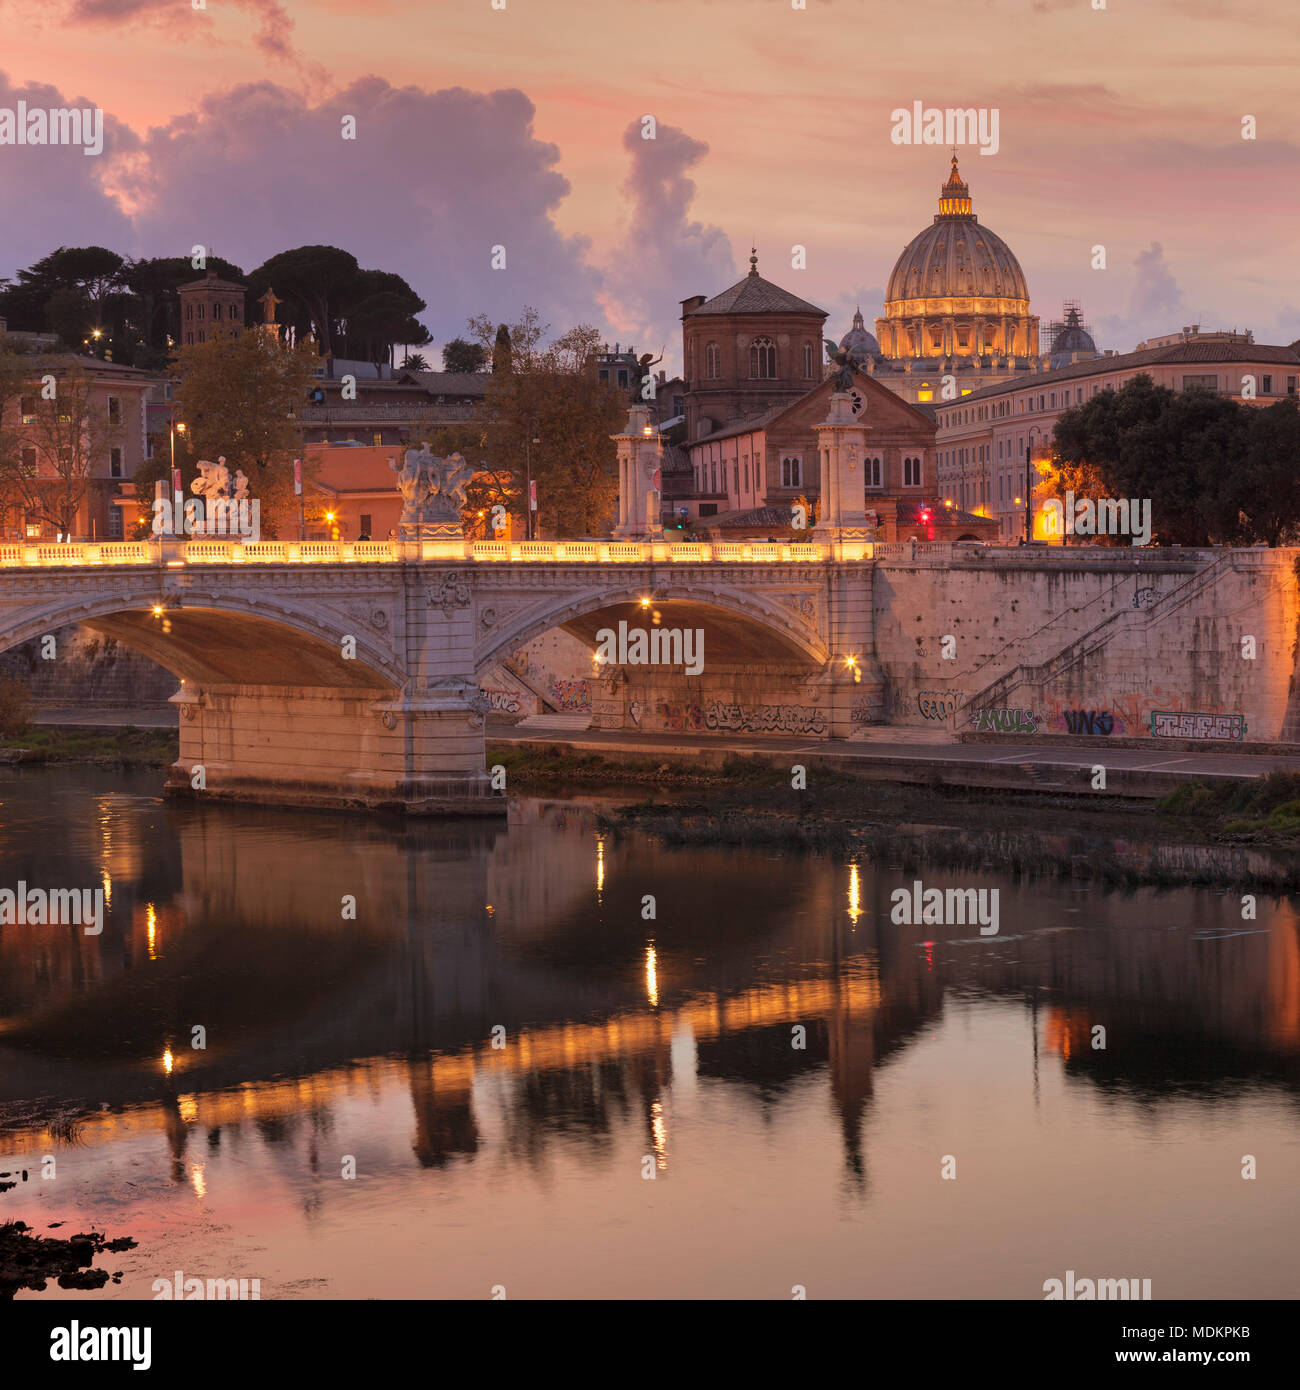 View over the Tiber to St. Peter's at sunset, Rome, Lazio, Italy - Stock Image